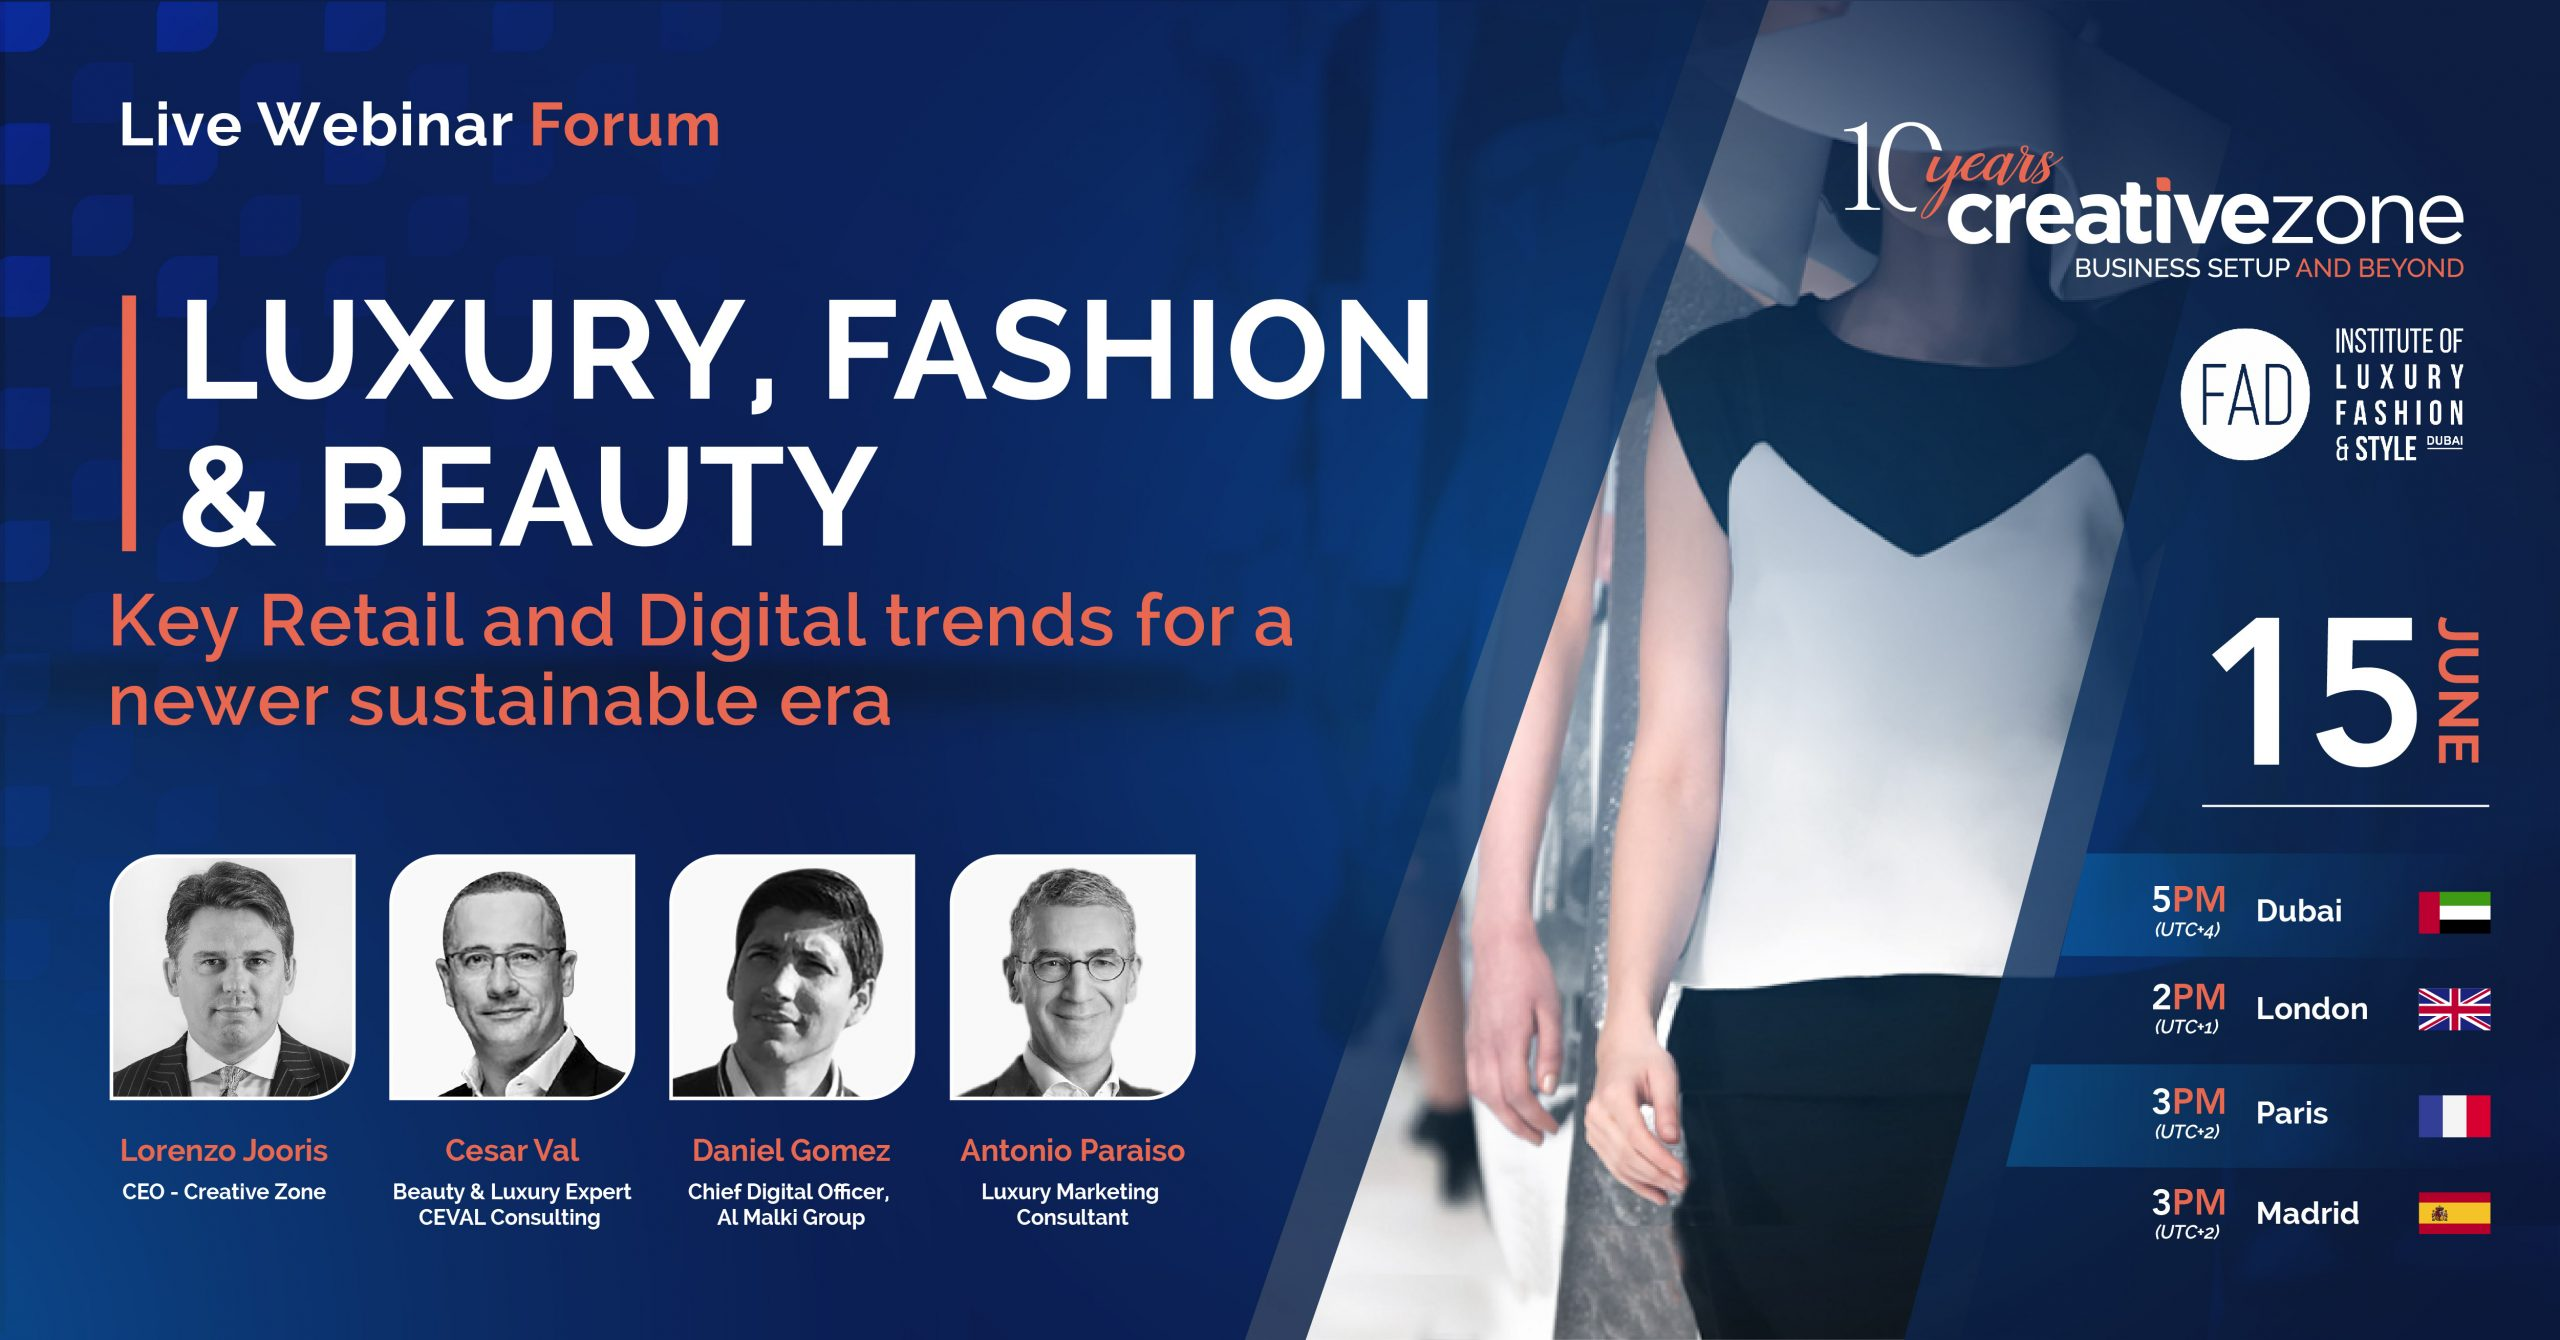 Creative Zone - Luxury, Fashion, & Beauty: Key Retail & Digital Trends for a Newer Sustainable Era